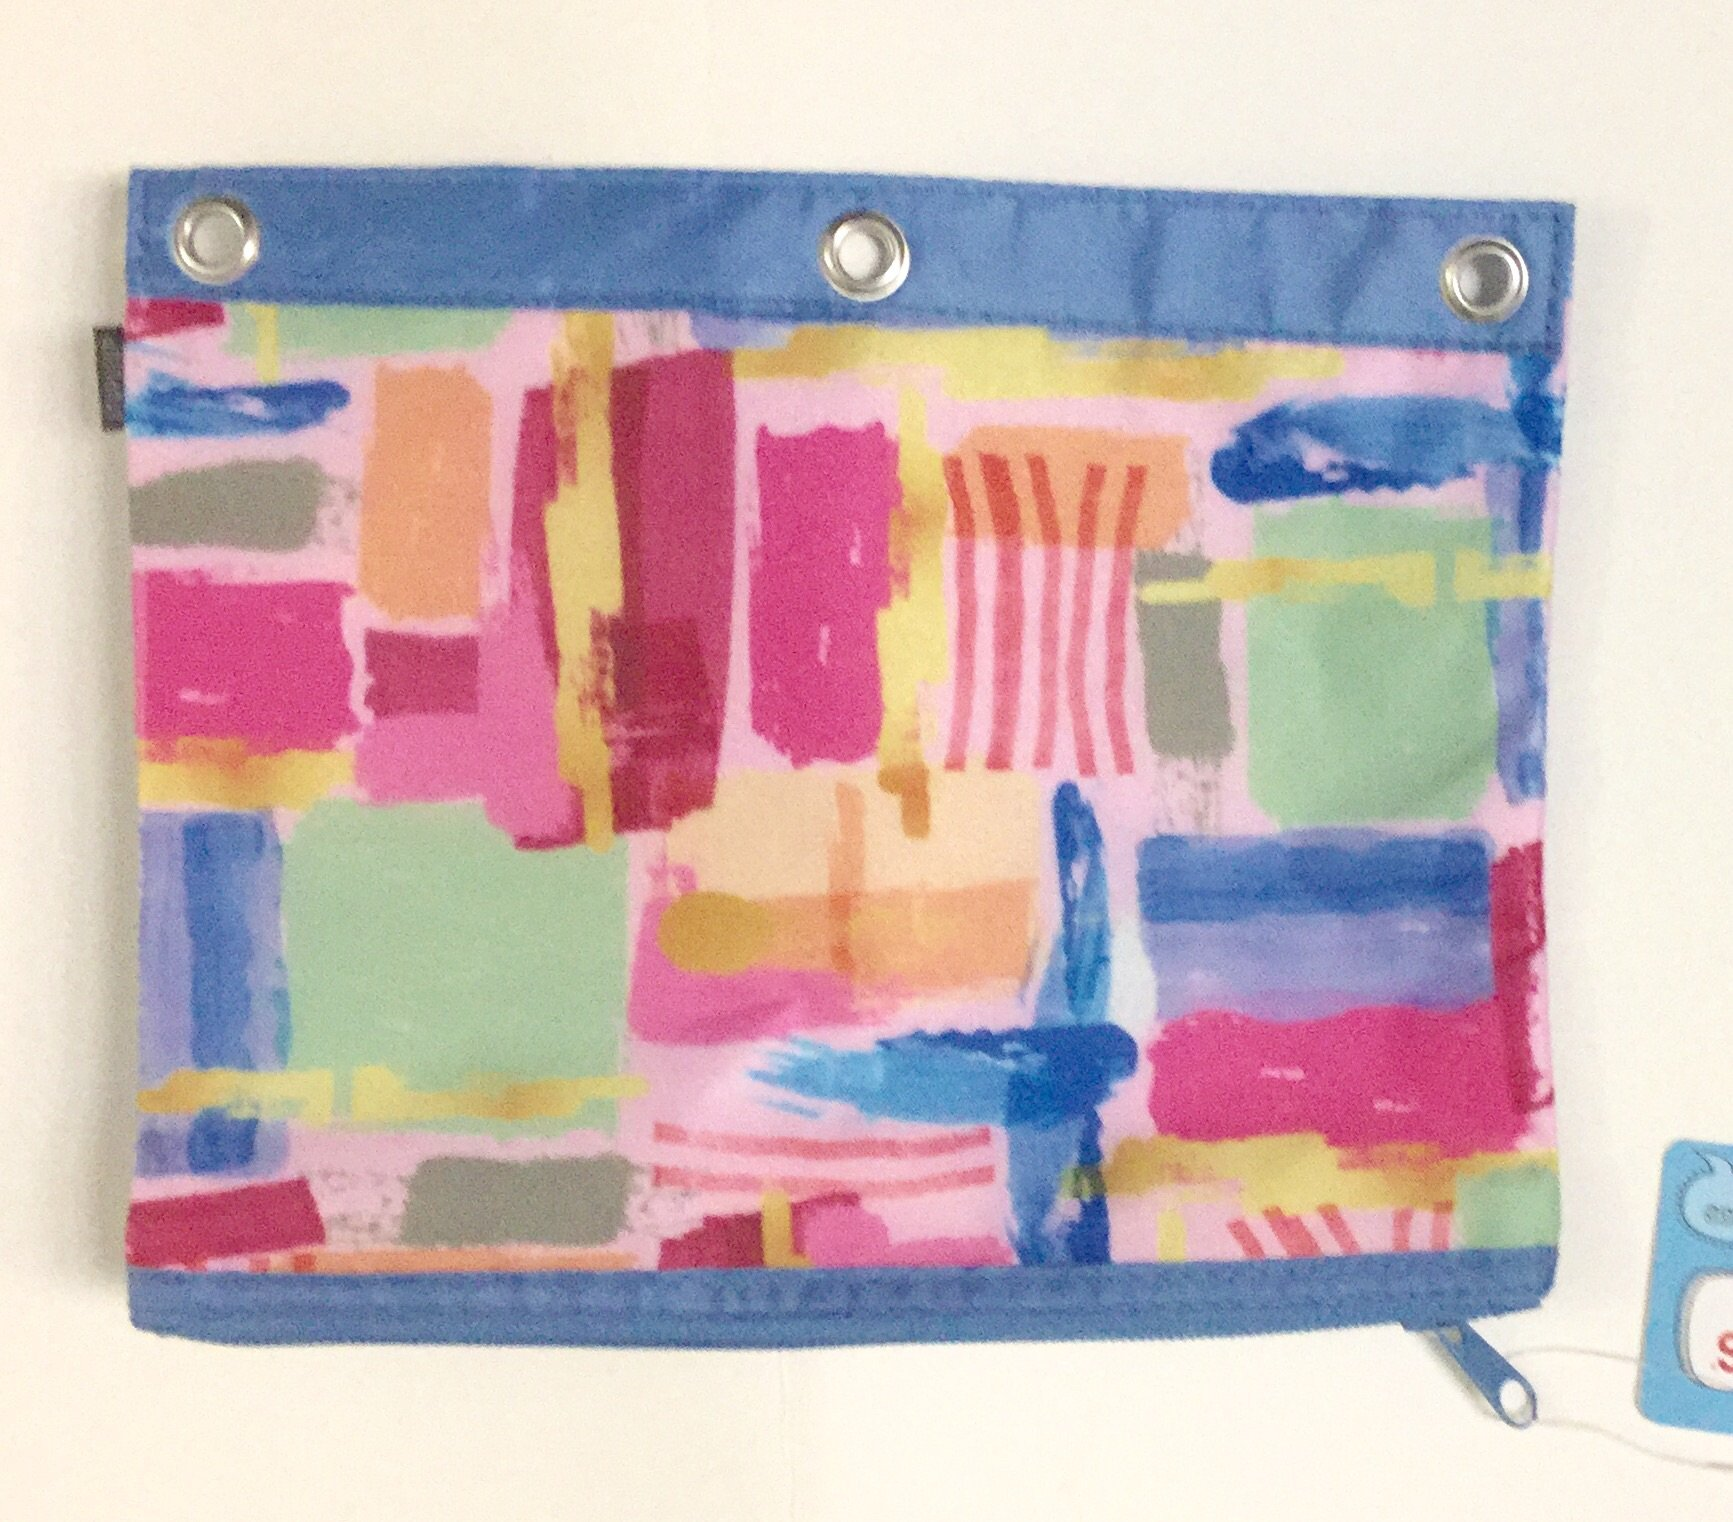 Staples 3 Ring Binder Pencil or Pen Pouch 9.5'' x 7.5'', Water Color